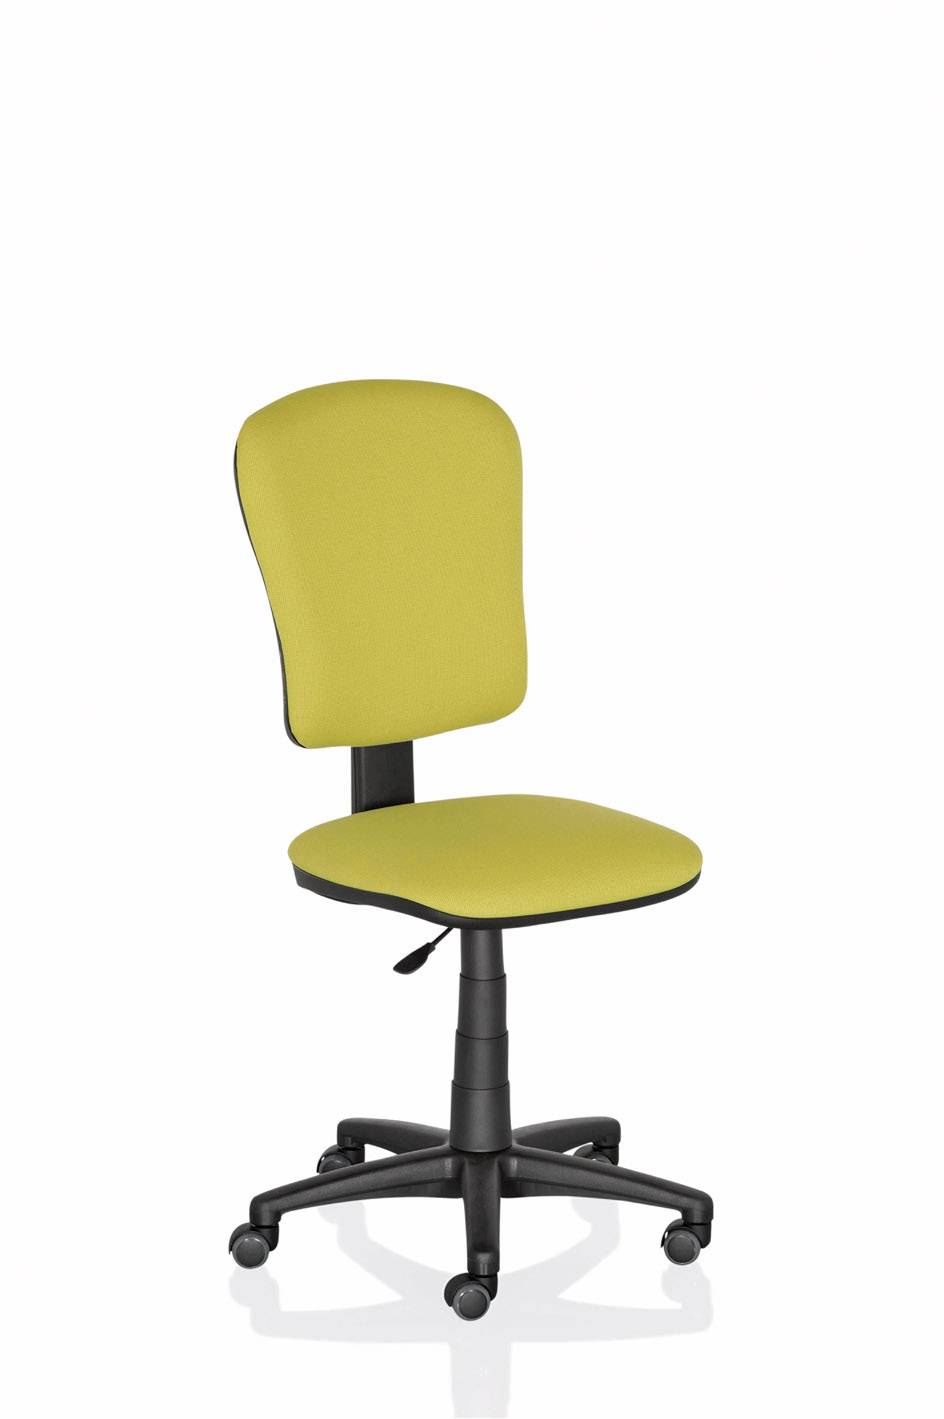 ANTARES task chair